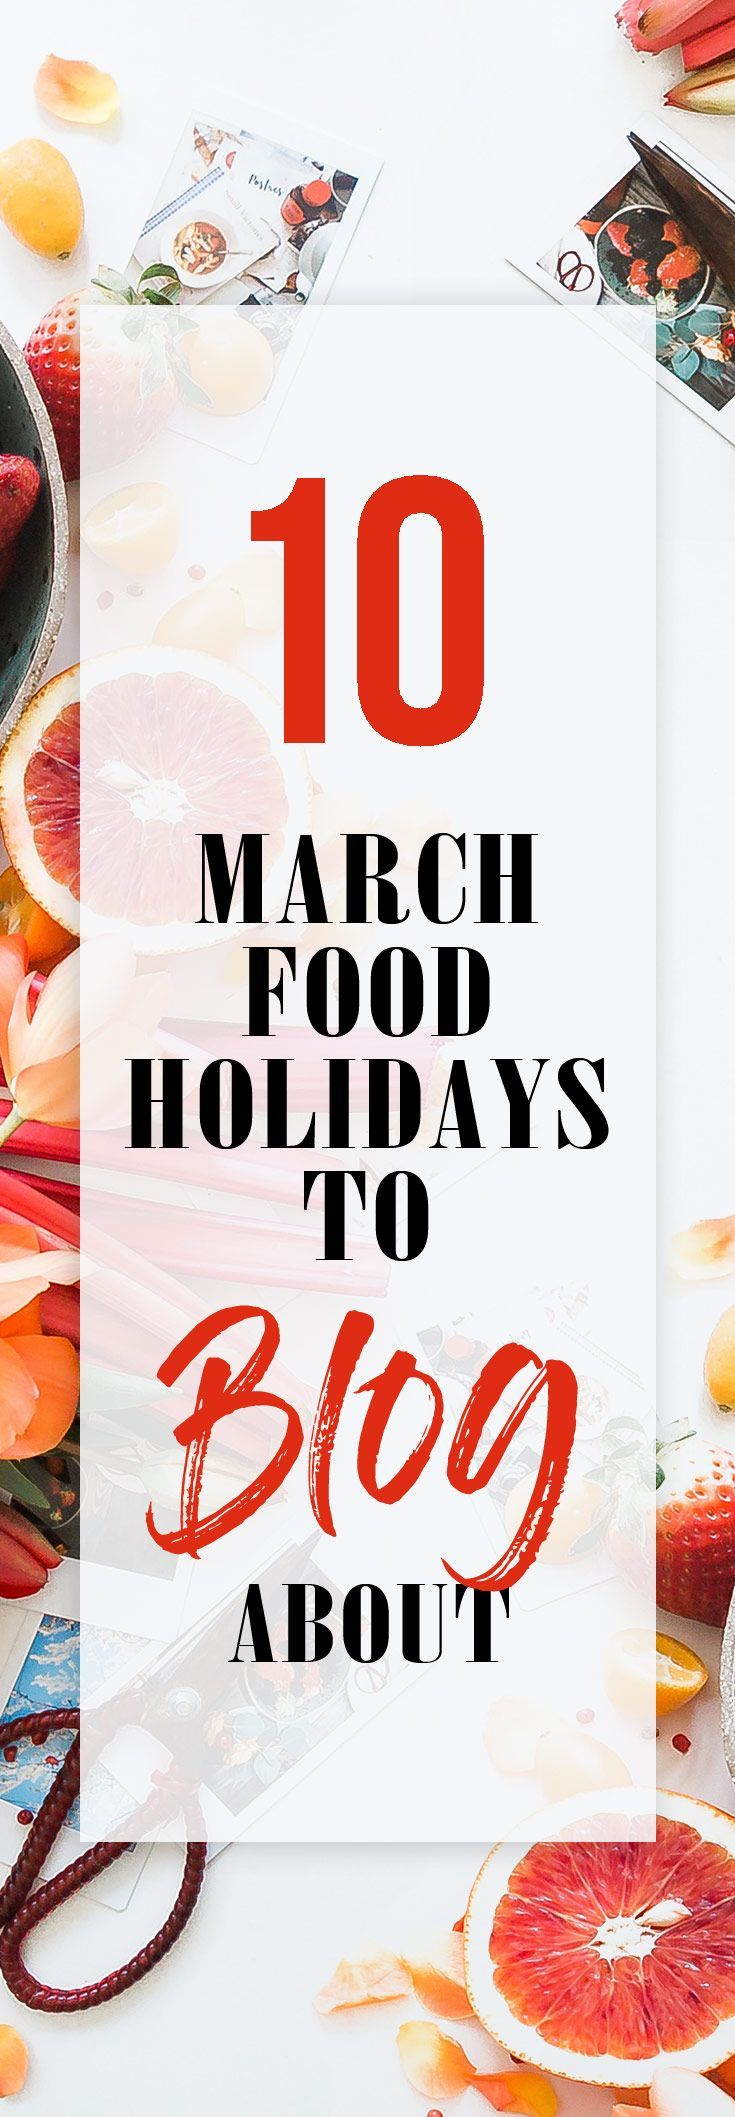 Once again we have a selection of fun food holidays ready for you. This March we'll have some peanut butter, meatballs, Oreos, and whiskey. Let's get eating and celebrating! Keywords: Food holidays, Fun holidays, Date ideas, Funny holidays, National days, Steak day, Whiskey day, Gift ideas, Holiday calendar, Novelty holidays